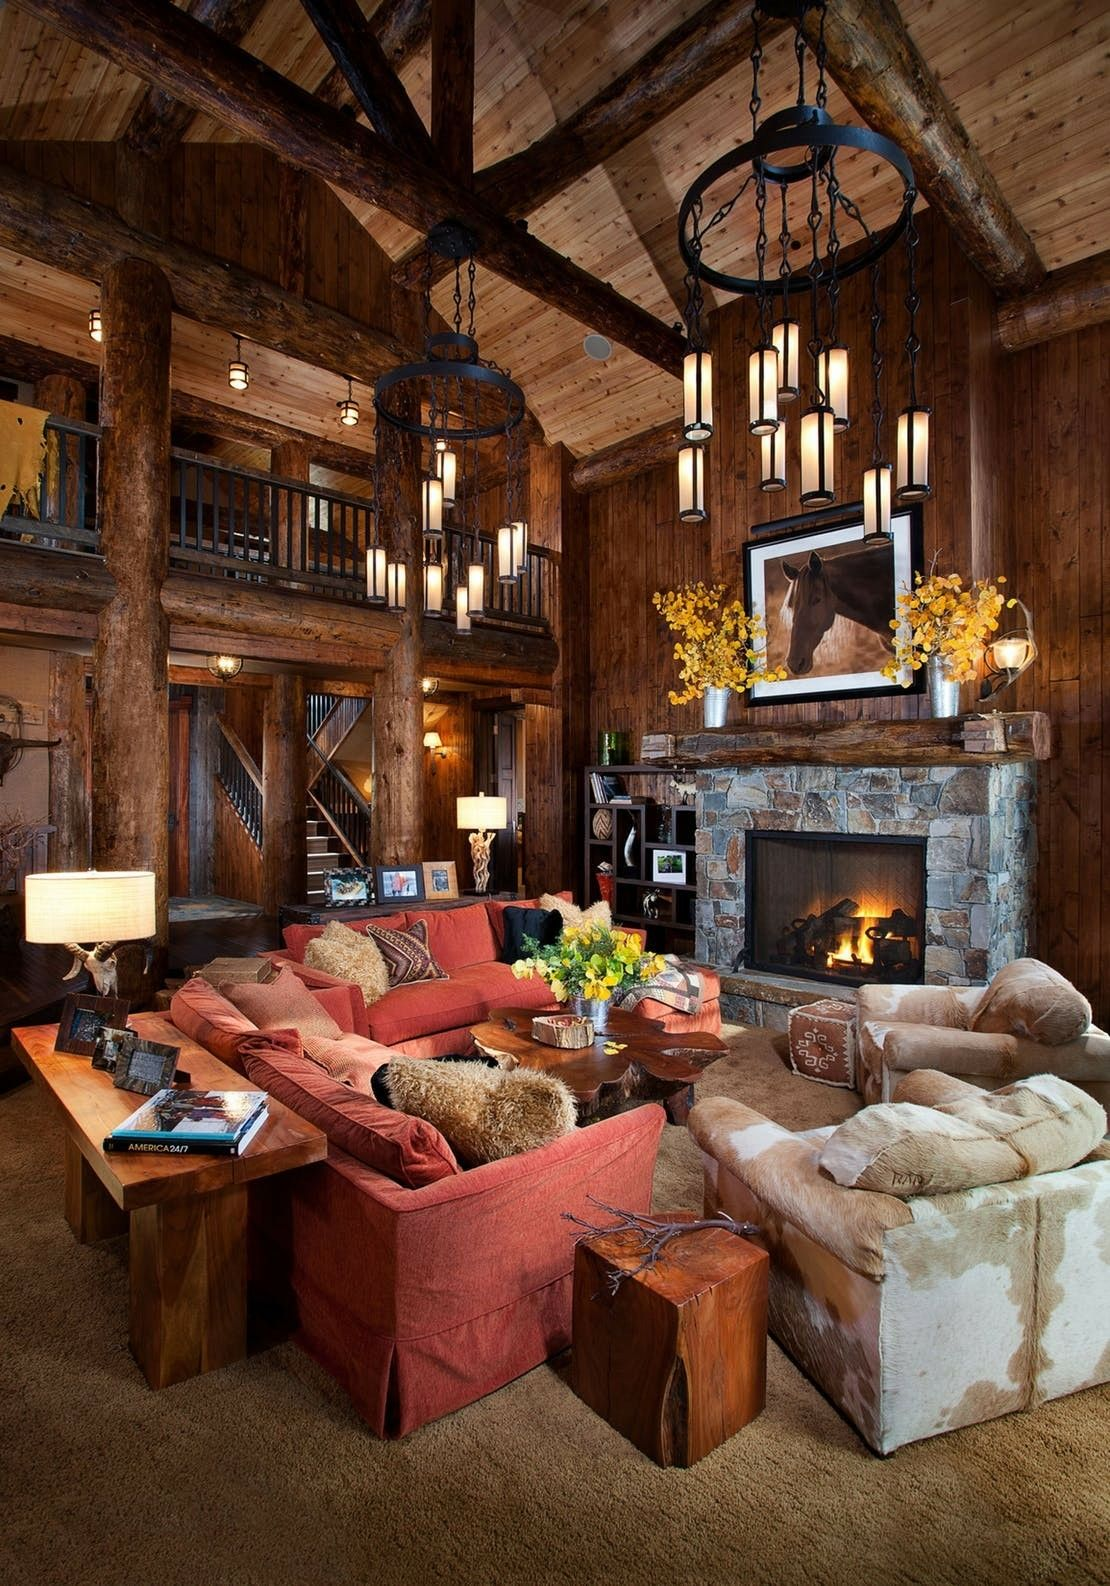 Artistic Inside Rustic Homes Interiors Pin By Andi On Home Pinterest Chalet Interior